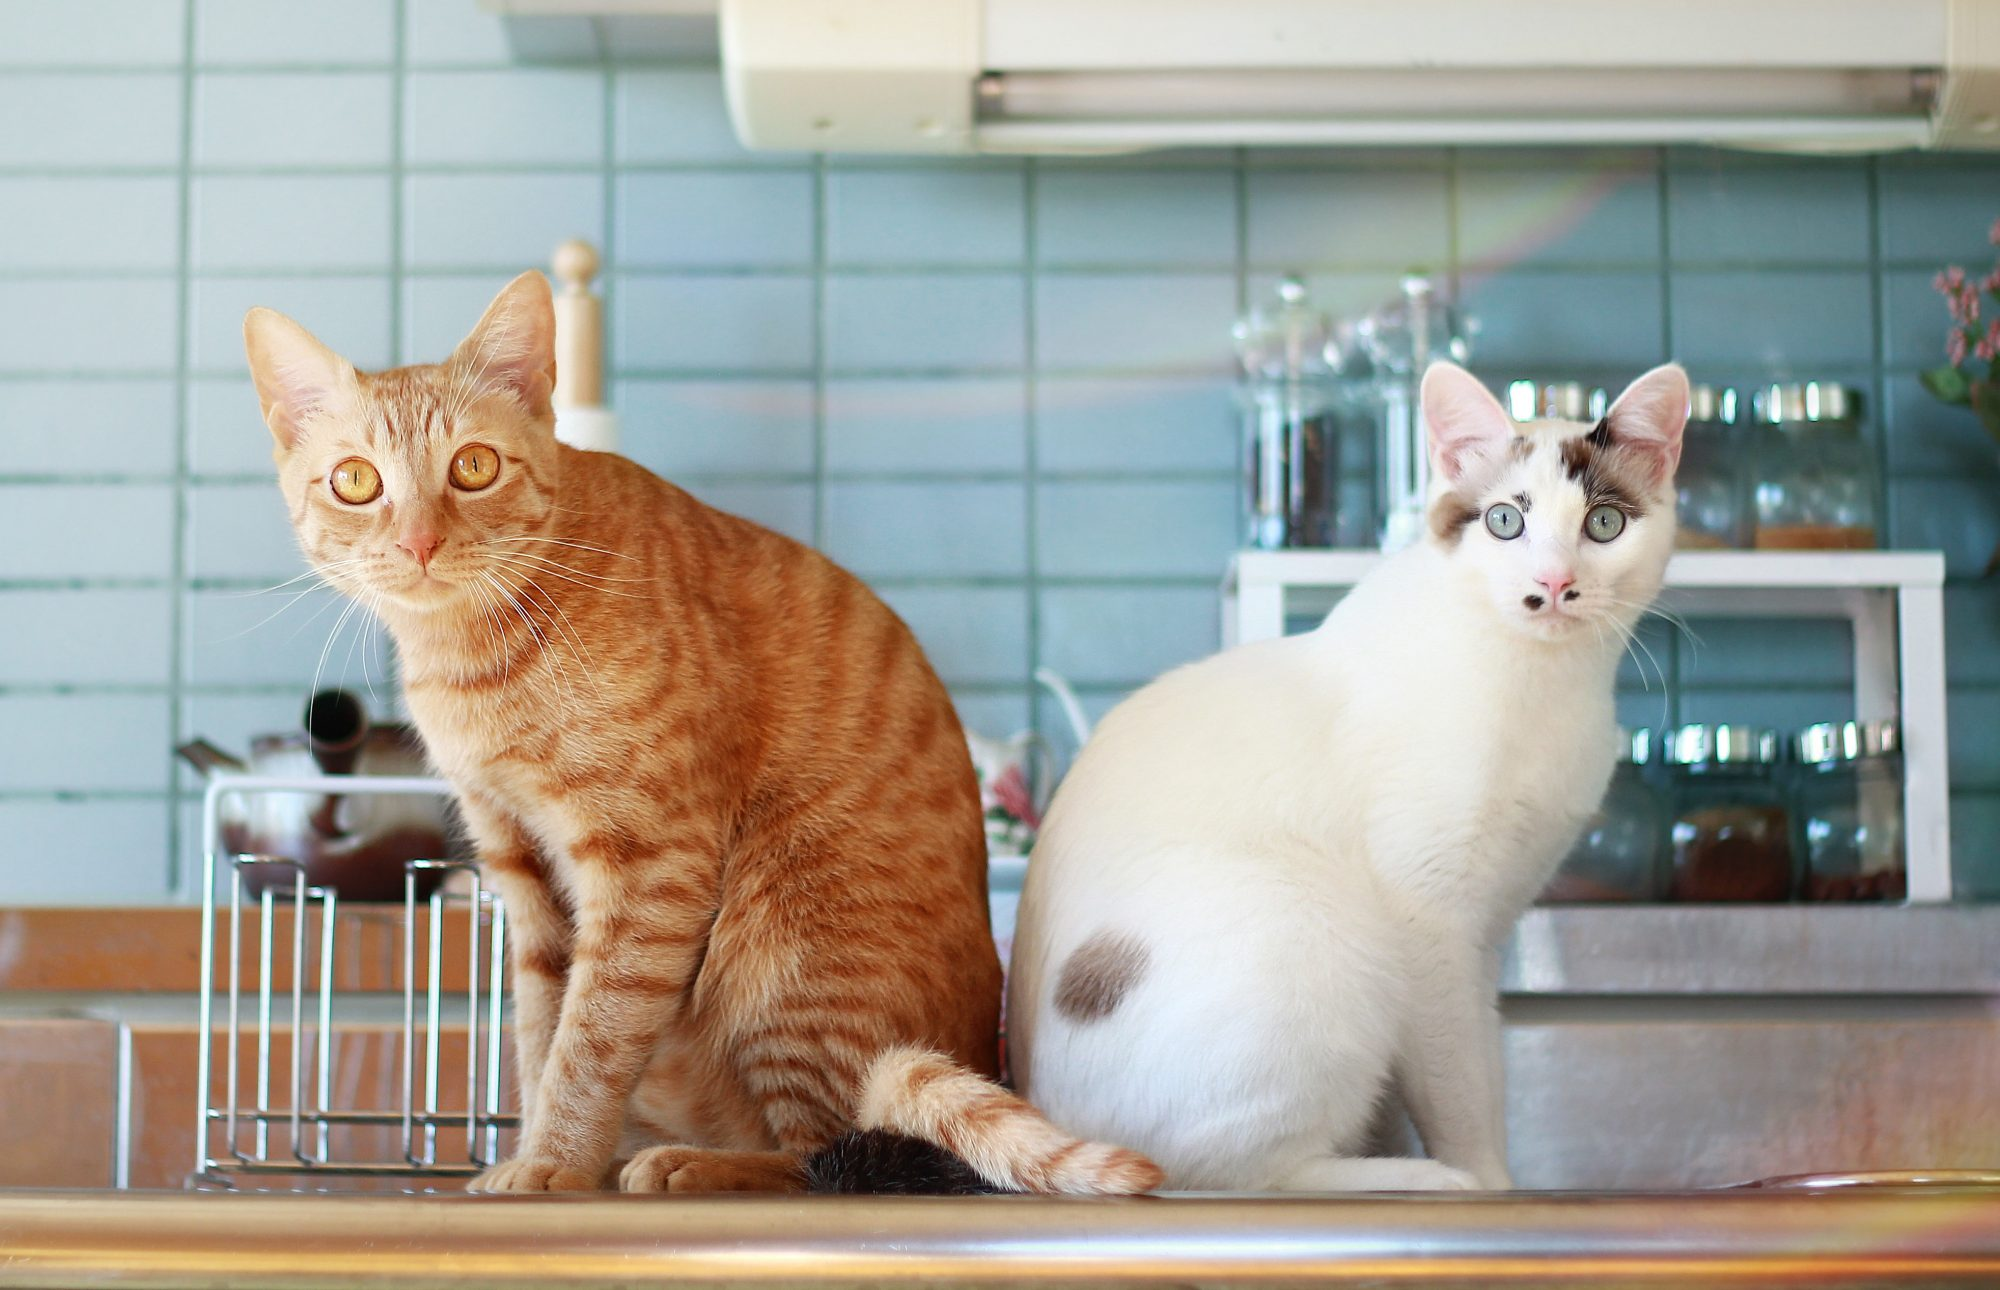 Cats in the Kitchen Getty 10/29/19